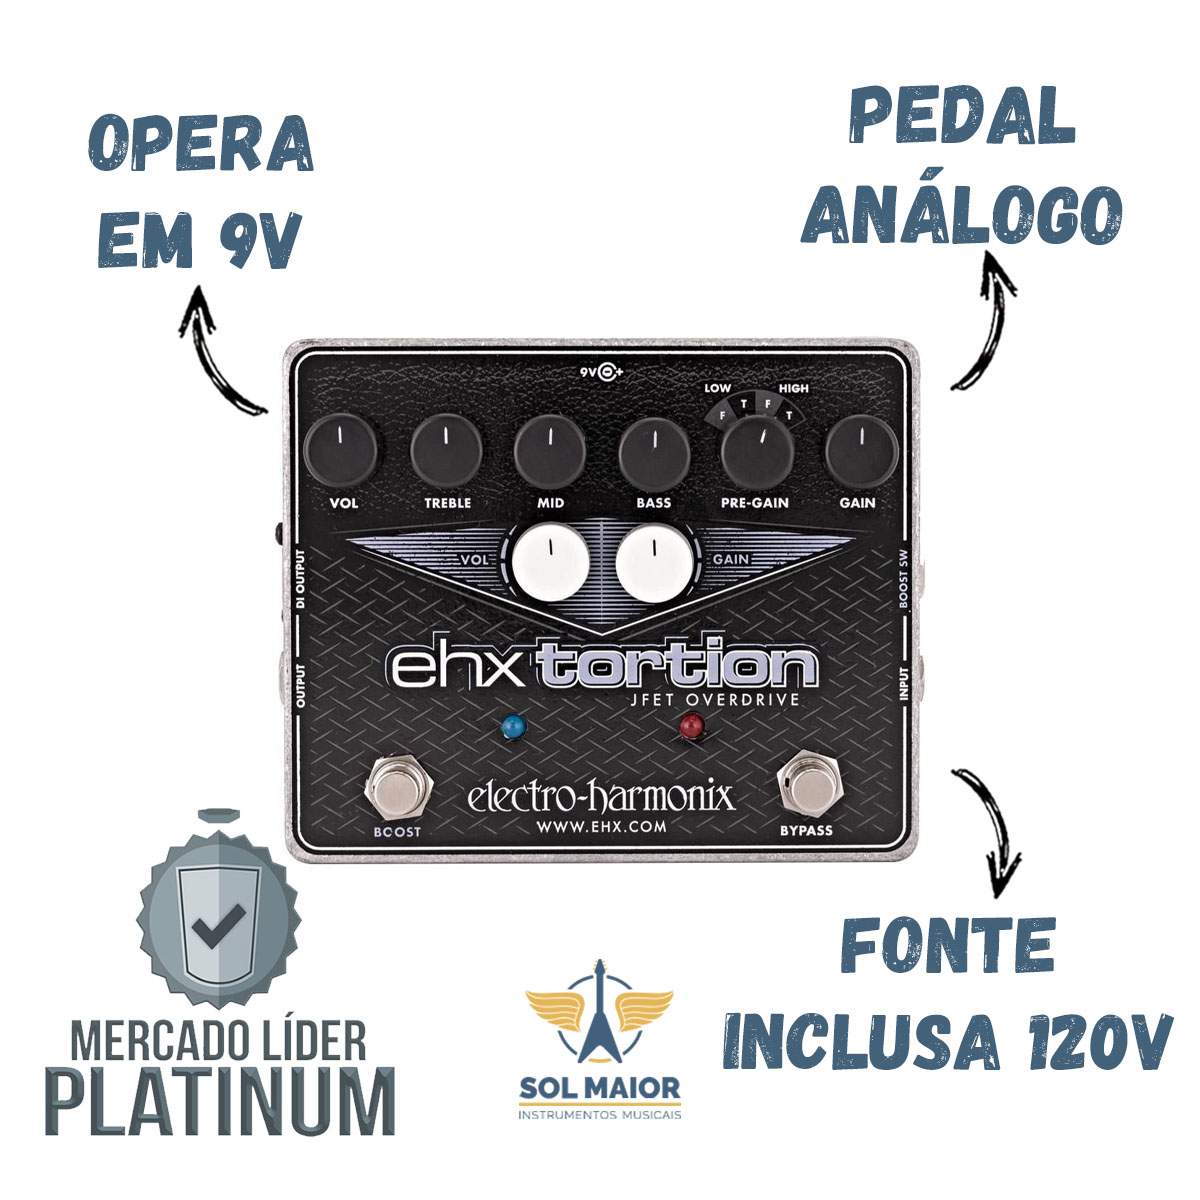 Pedal Electro-harmonix Ehx Tortion Jfet Overdrive Ehxtortion